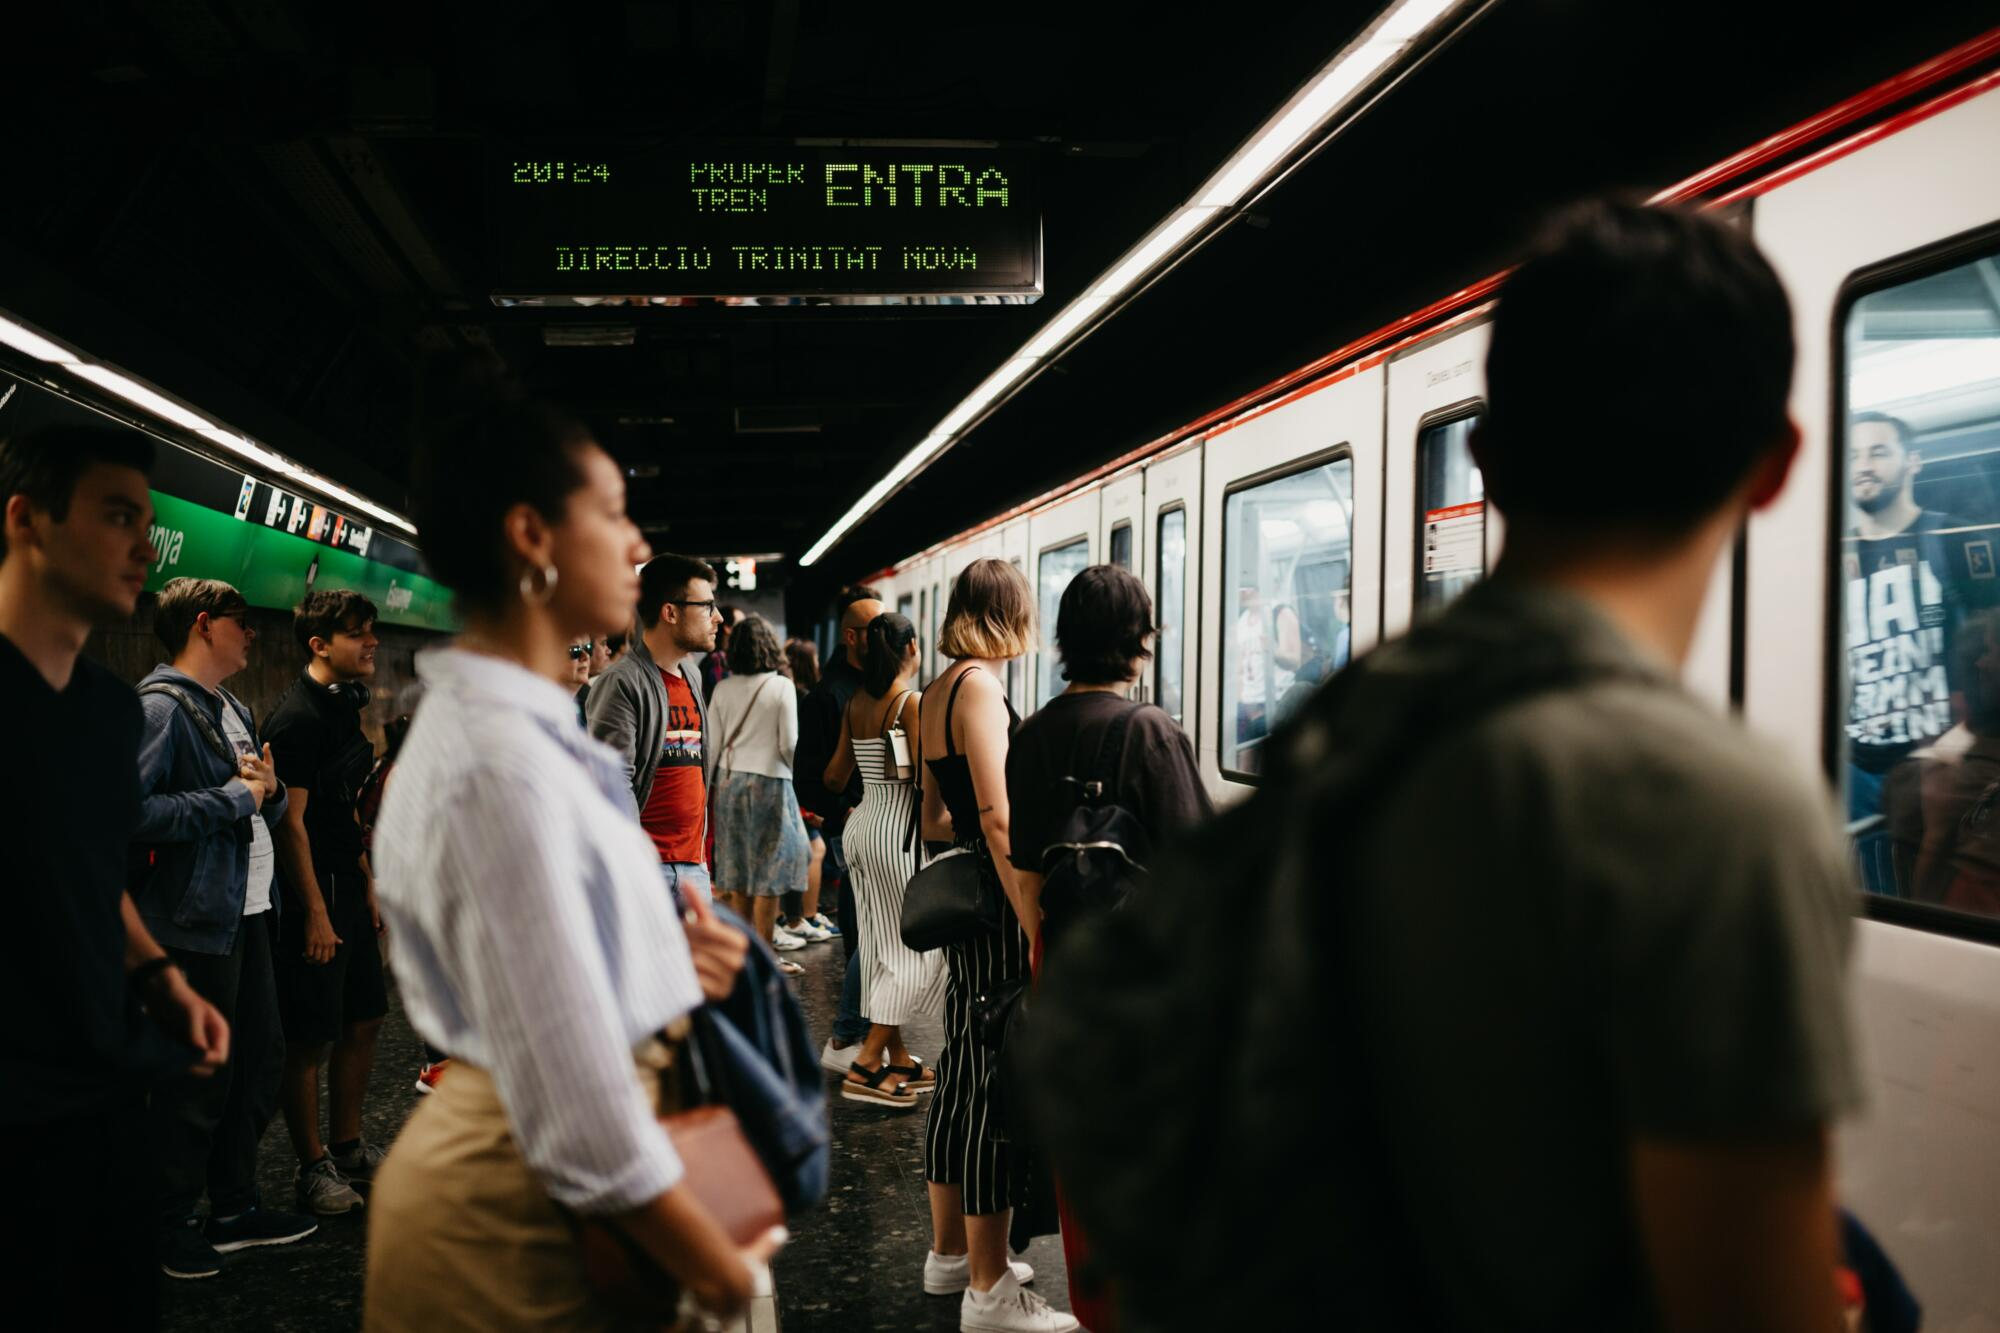 Research reveals harassment on Barcelona's public transport